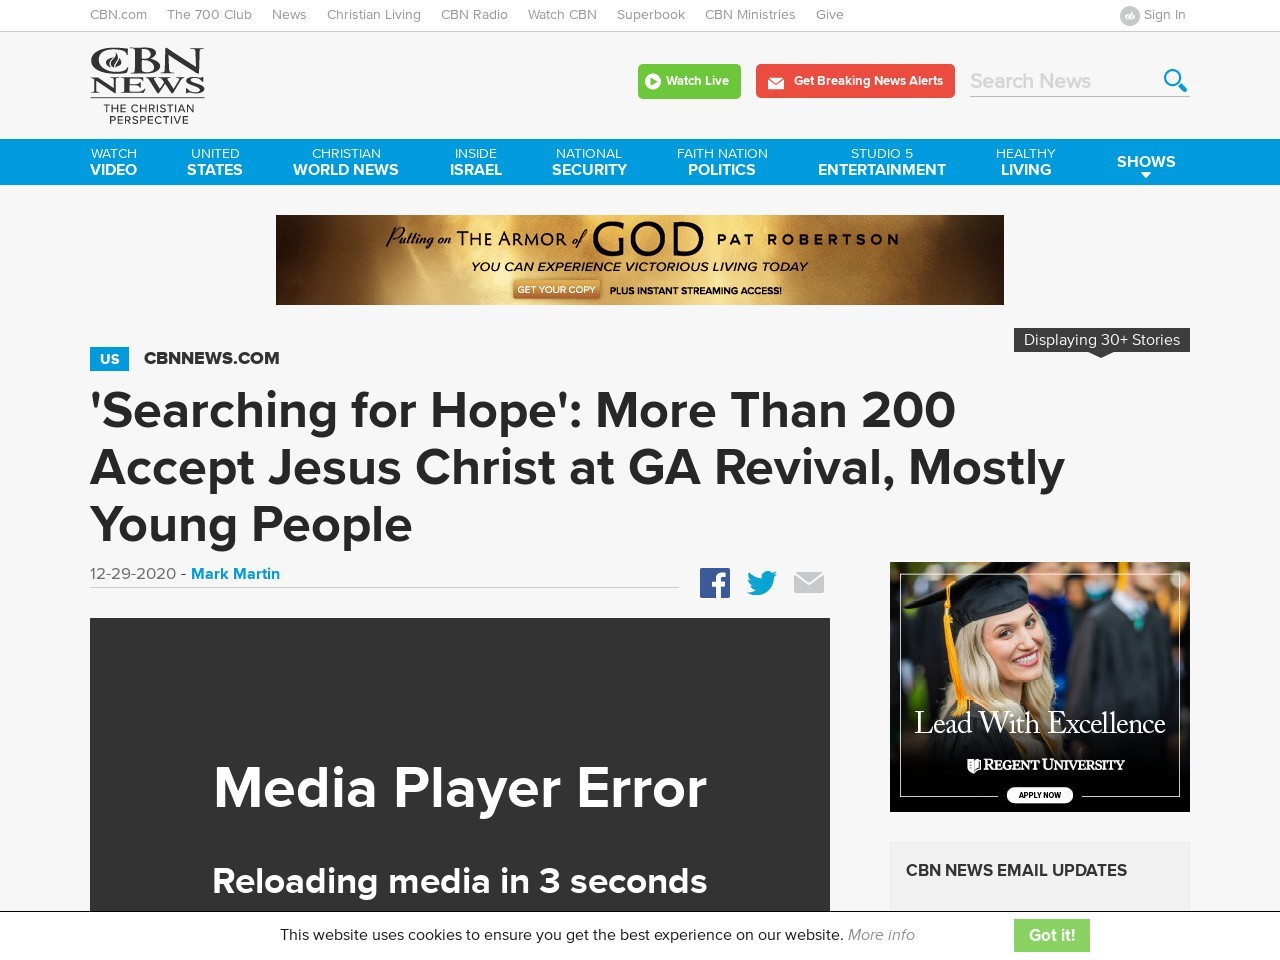 'Searching for Hope': More Than 200 Accept Jesus Christ at GA Revival, Mostly Young People